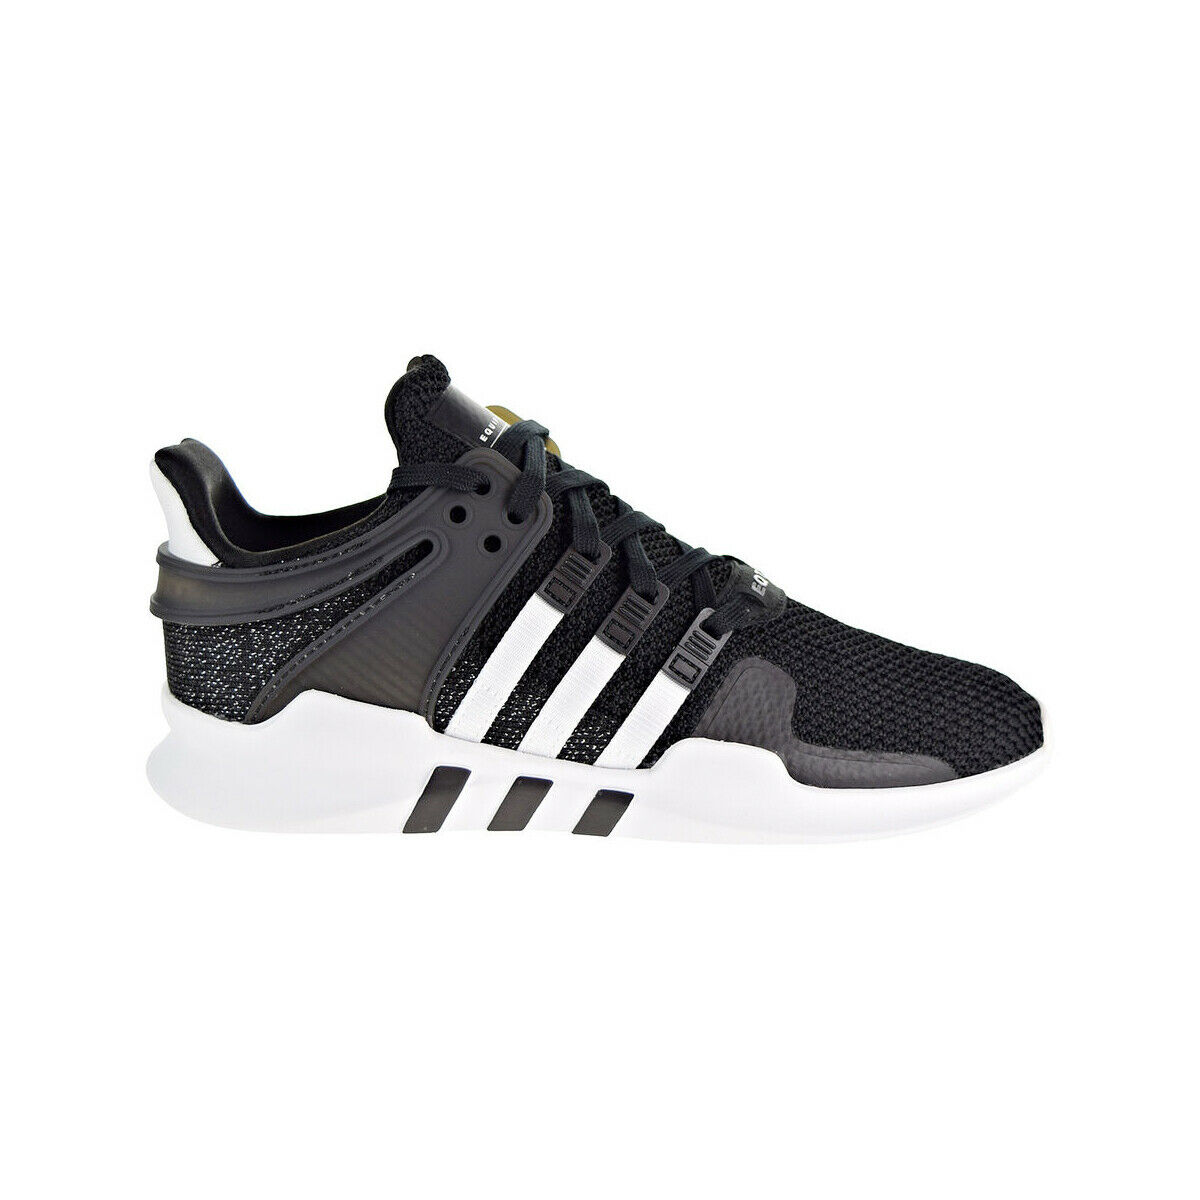 Adidas Women Originals EQT Support ADV Black and White Style B37539